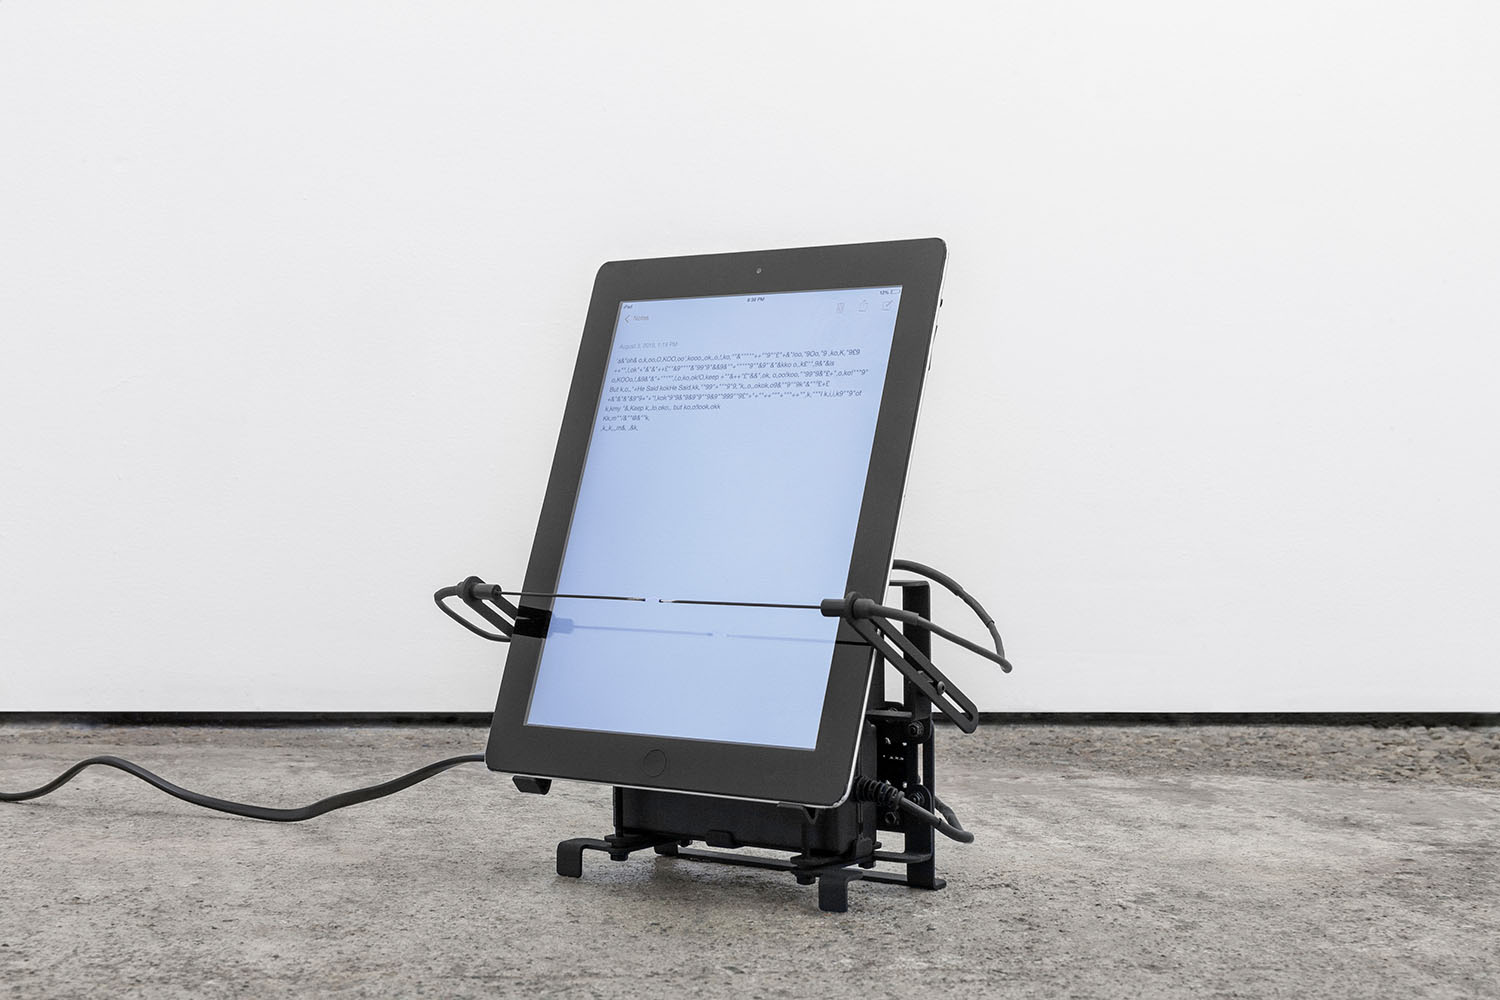 Possession Without the Body #6 (2019)  Dimensions variable. Water-jet cut steel, Apple iPad, electrical components, electricity. © Mathew Kneebone